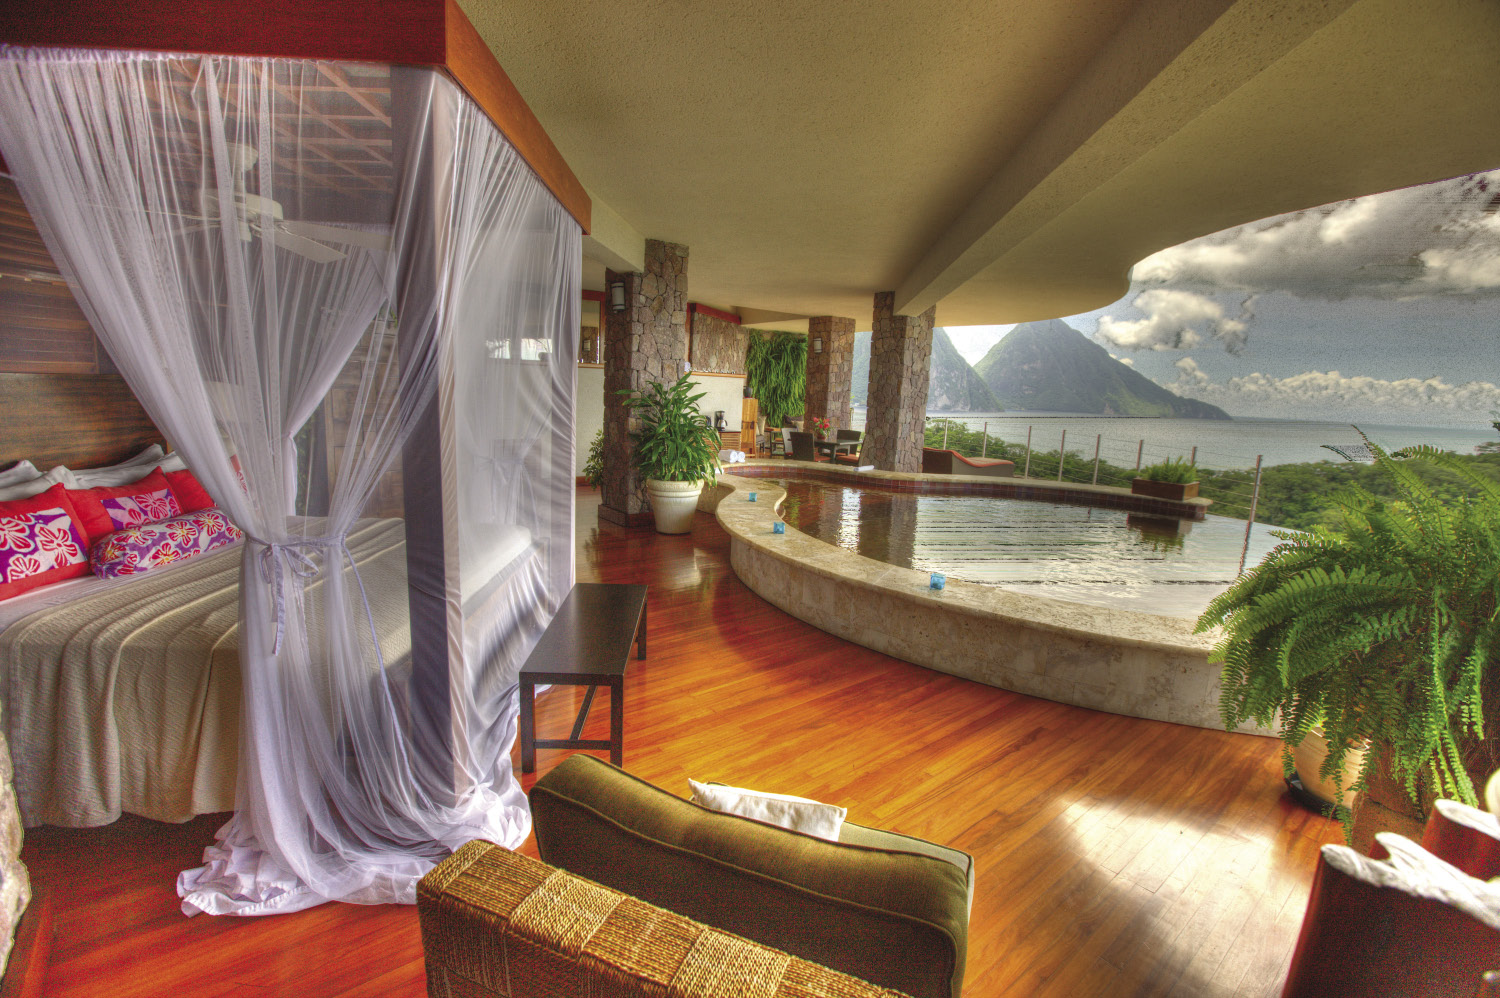 A room with a stunning view at Jade Mountain.